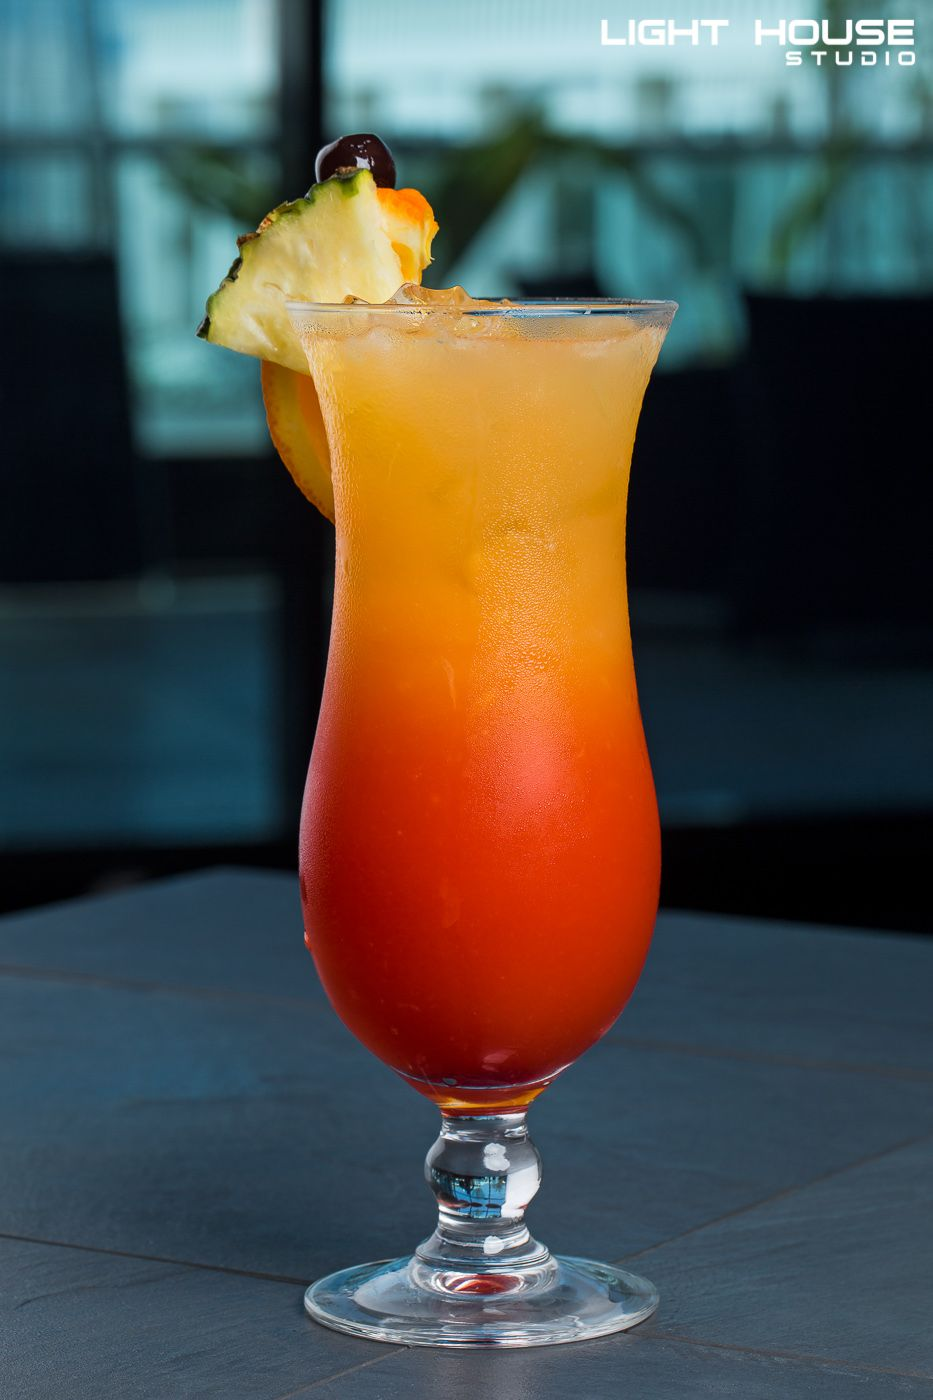 Summer Afternoon With A Drink In Your Hand Wouldn T That Be Just Perfect Restaurant Taste Of Fame Production Lig Photographing Food Dubai Food Glassware